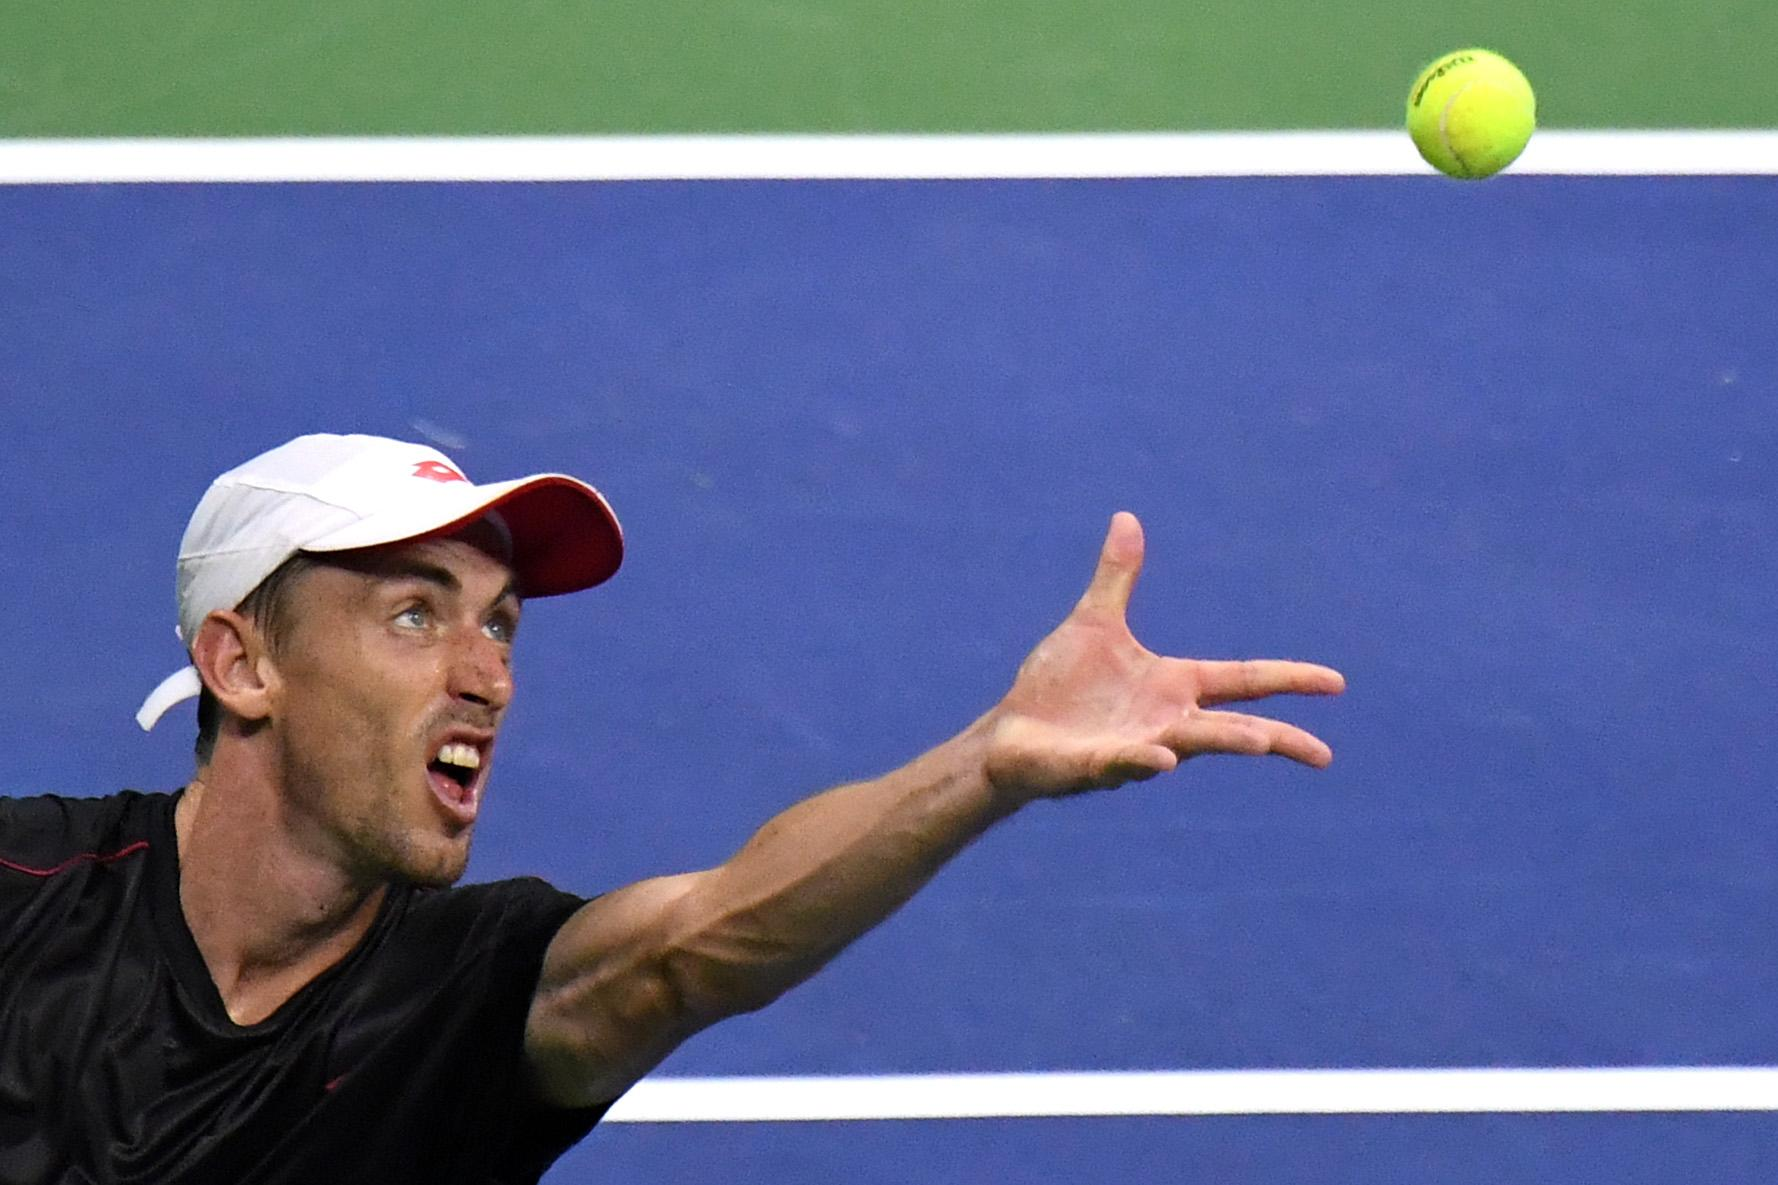 Australian John Millman knocked Roger Federer out